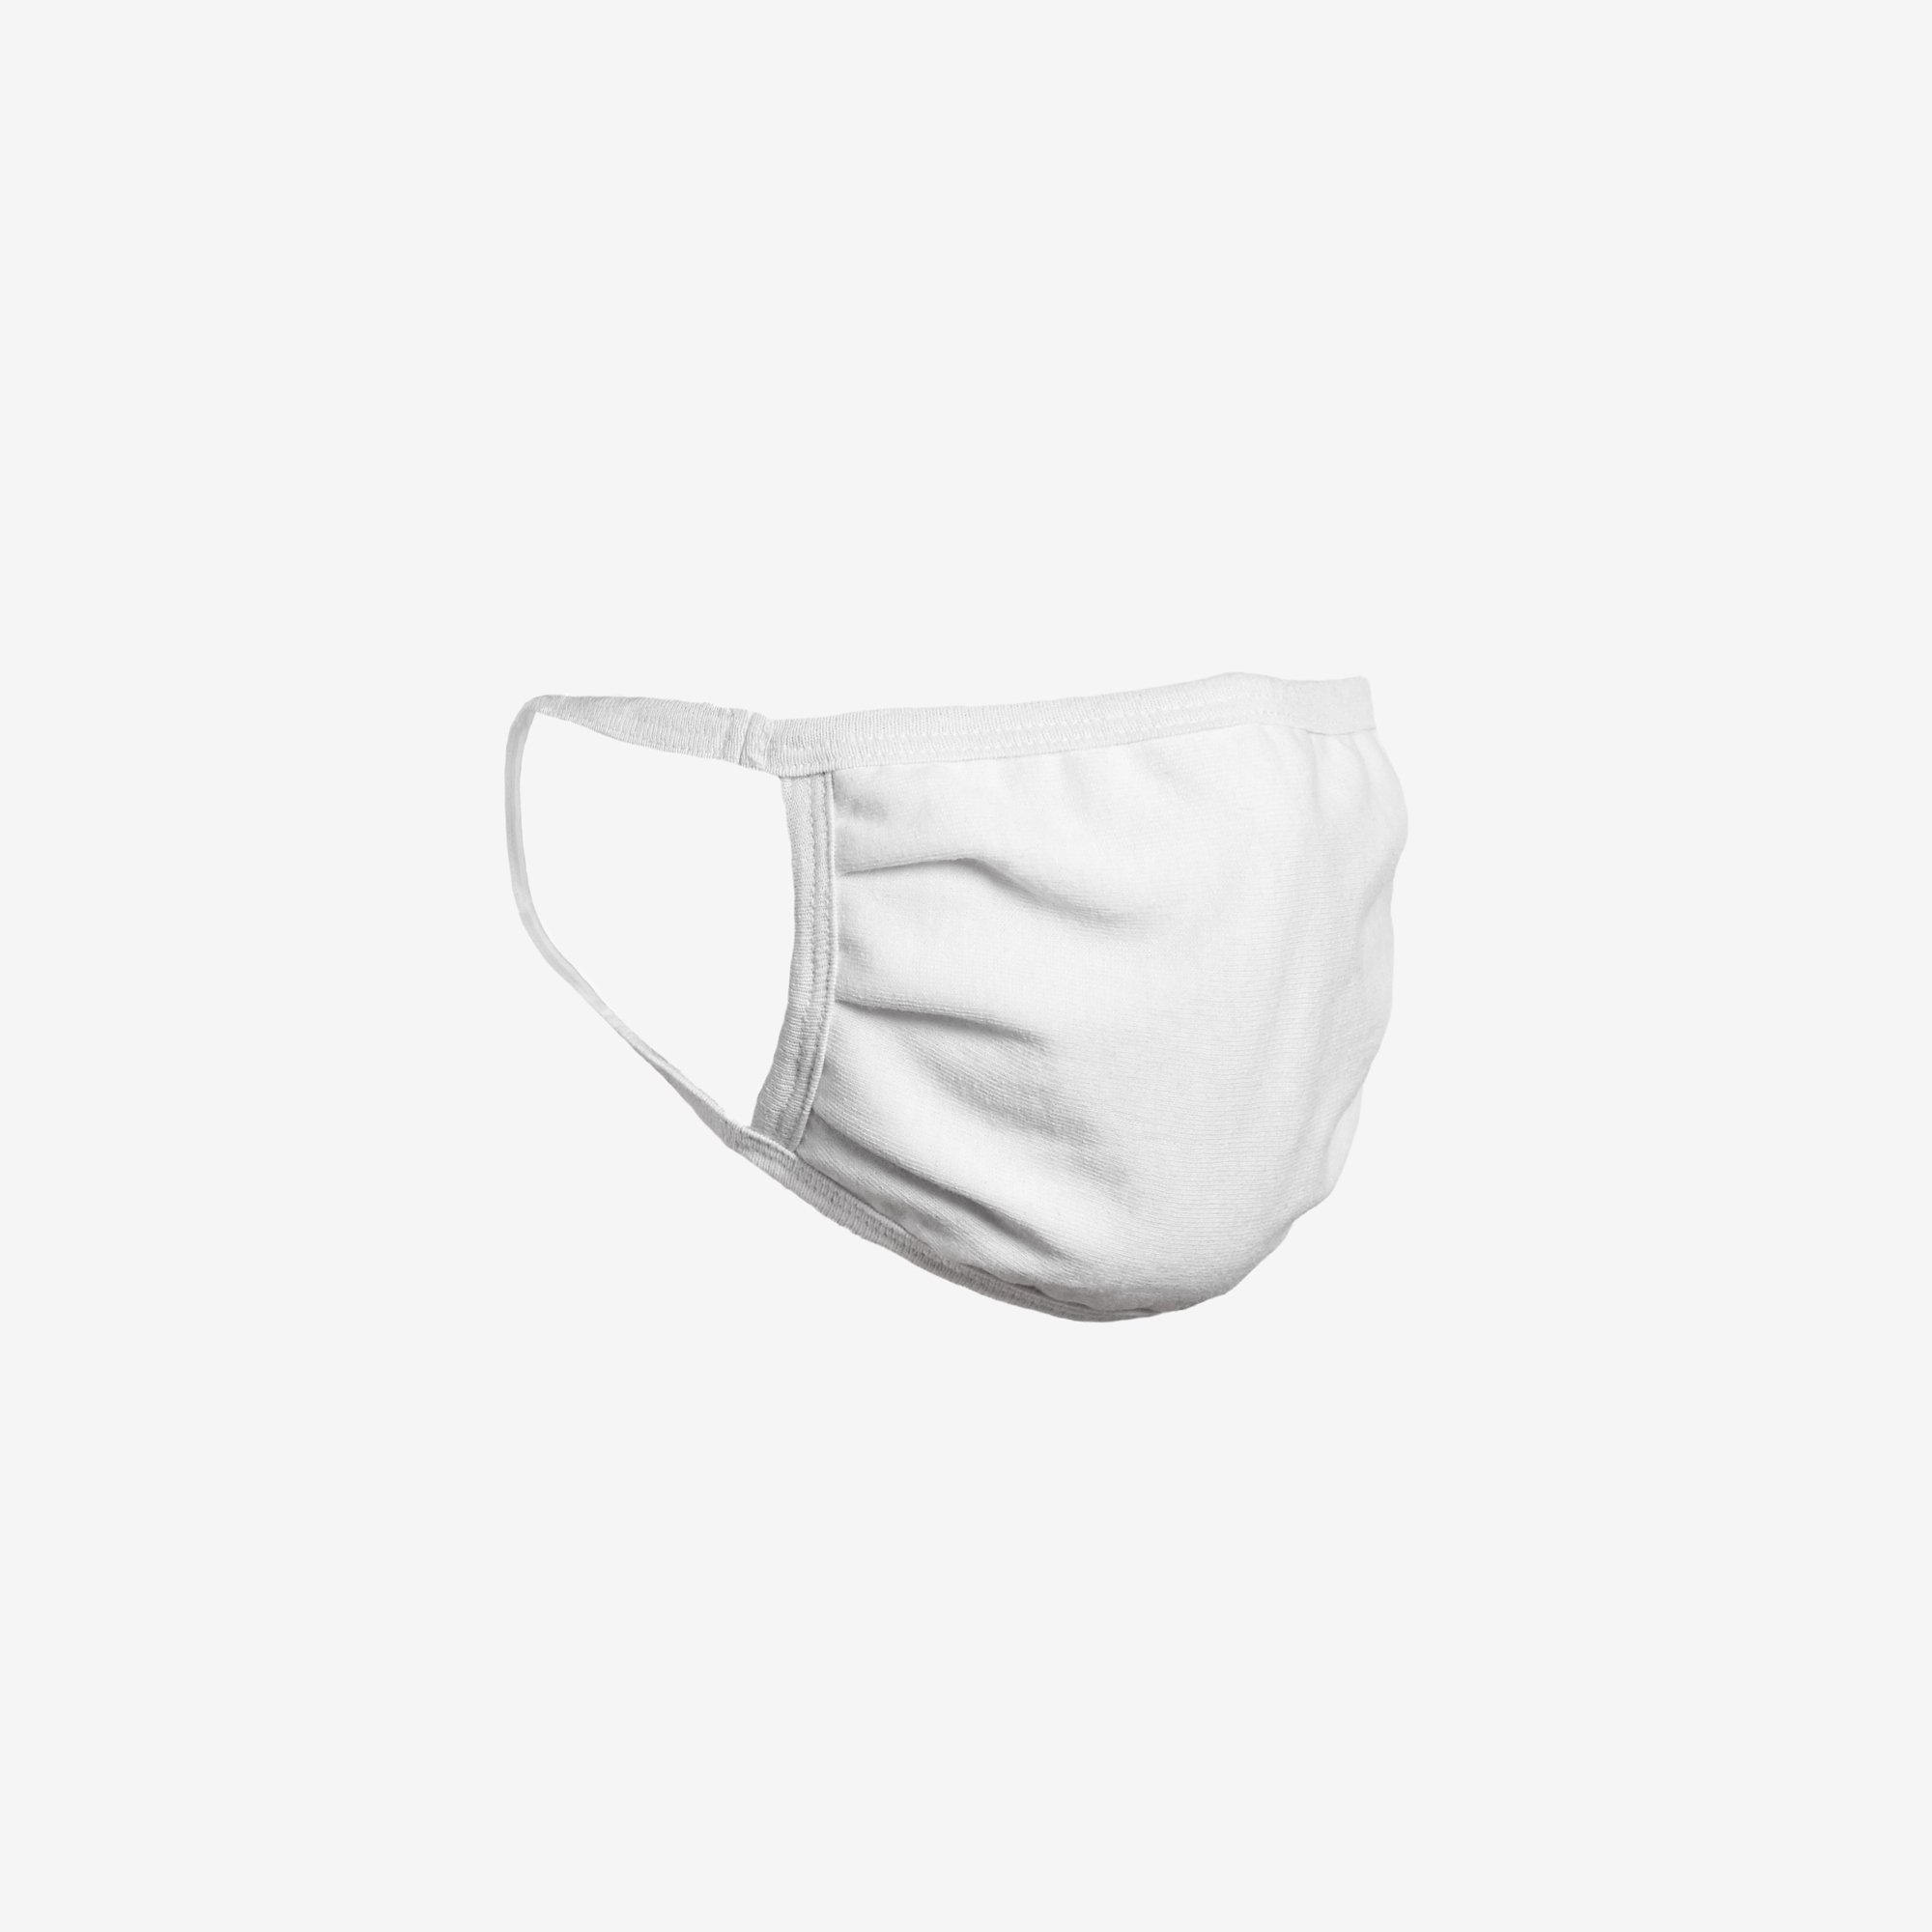 Free Face Masks Giveaway - One Iowa